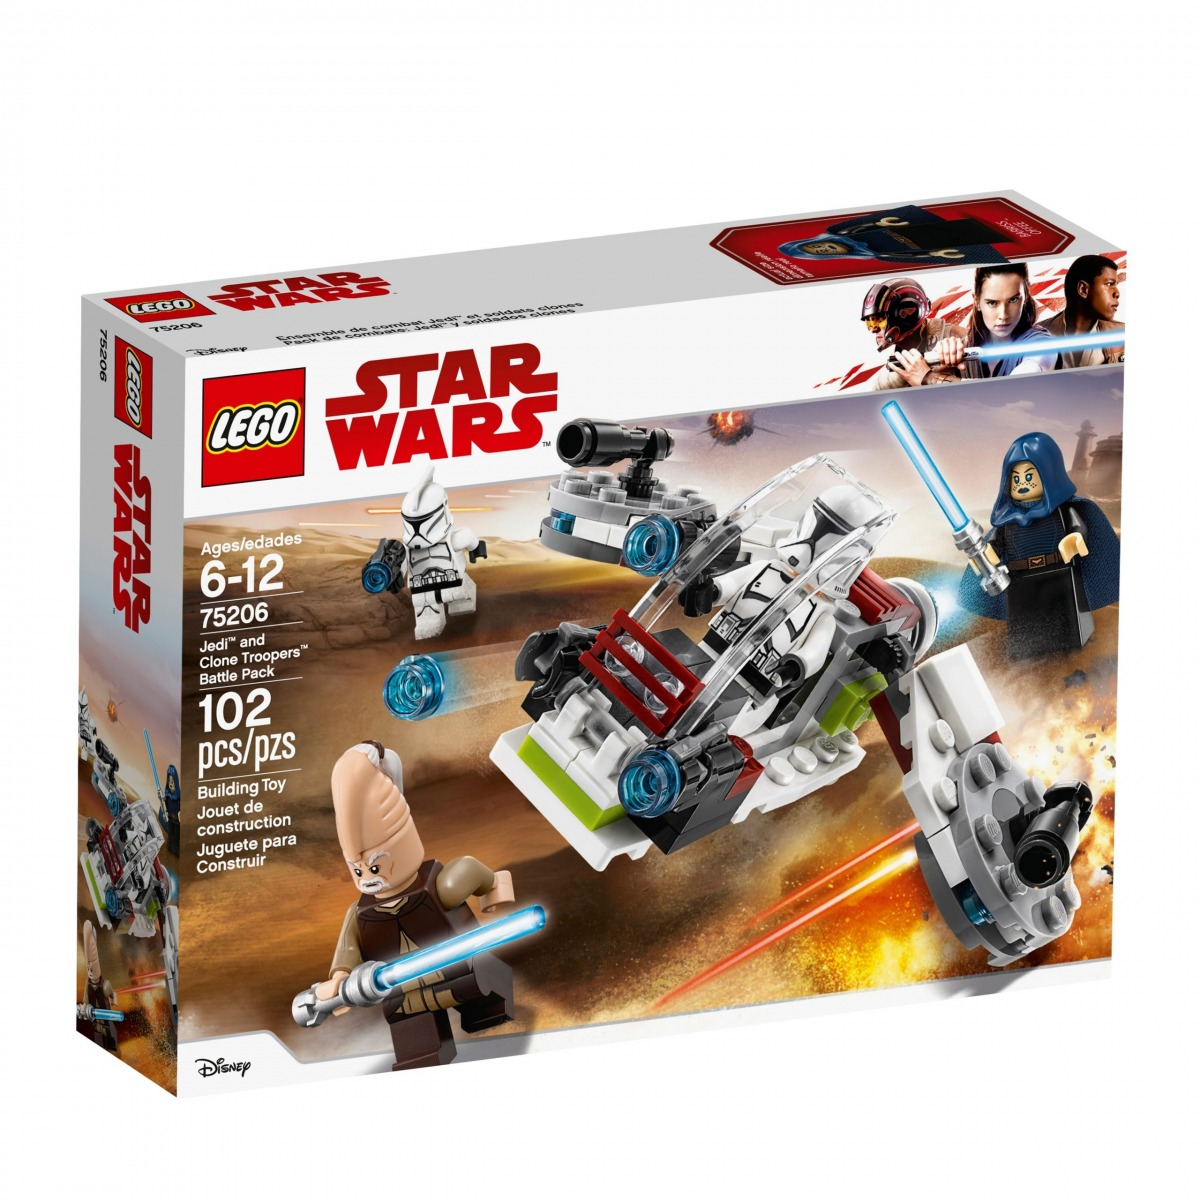 lego 75206 jedi and clone troopers battle pack scaled